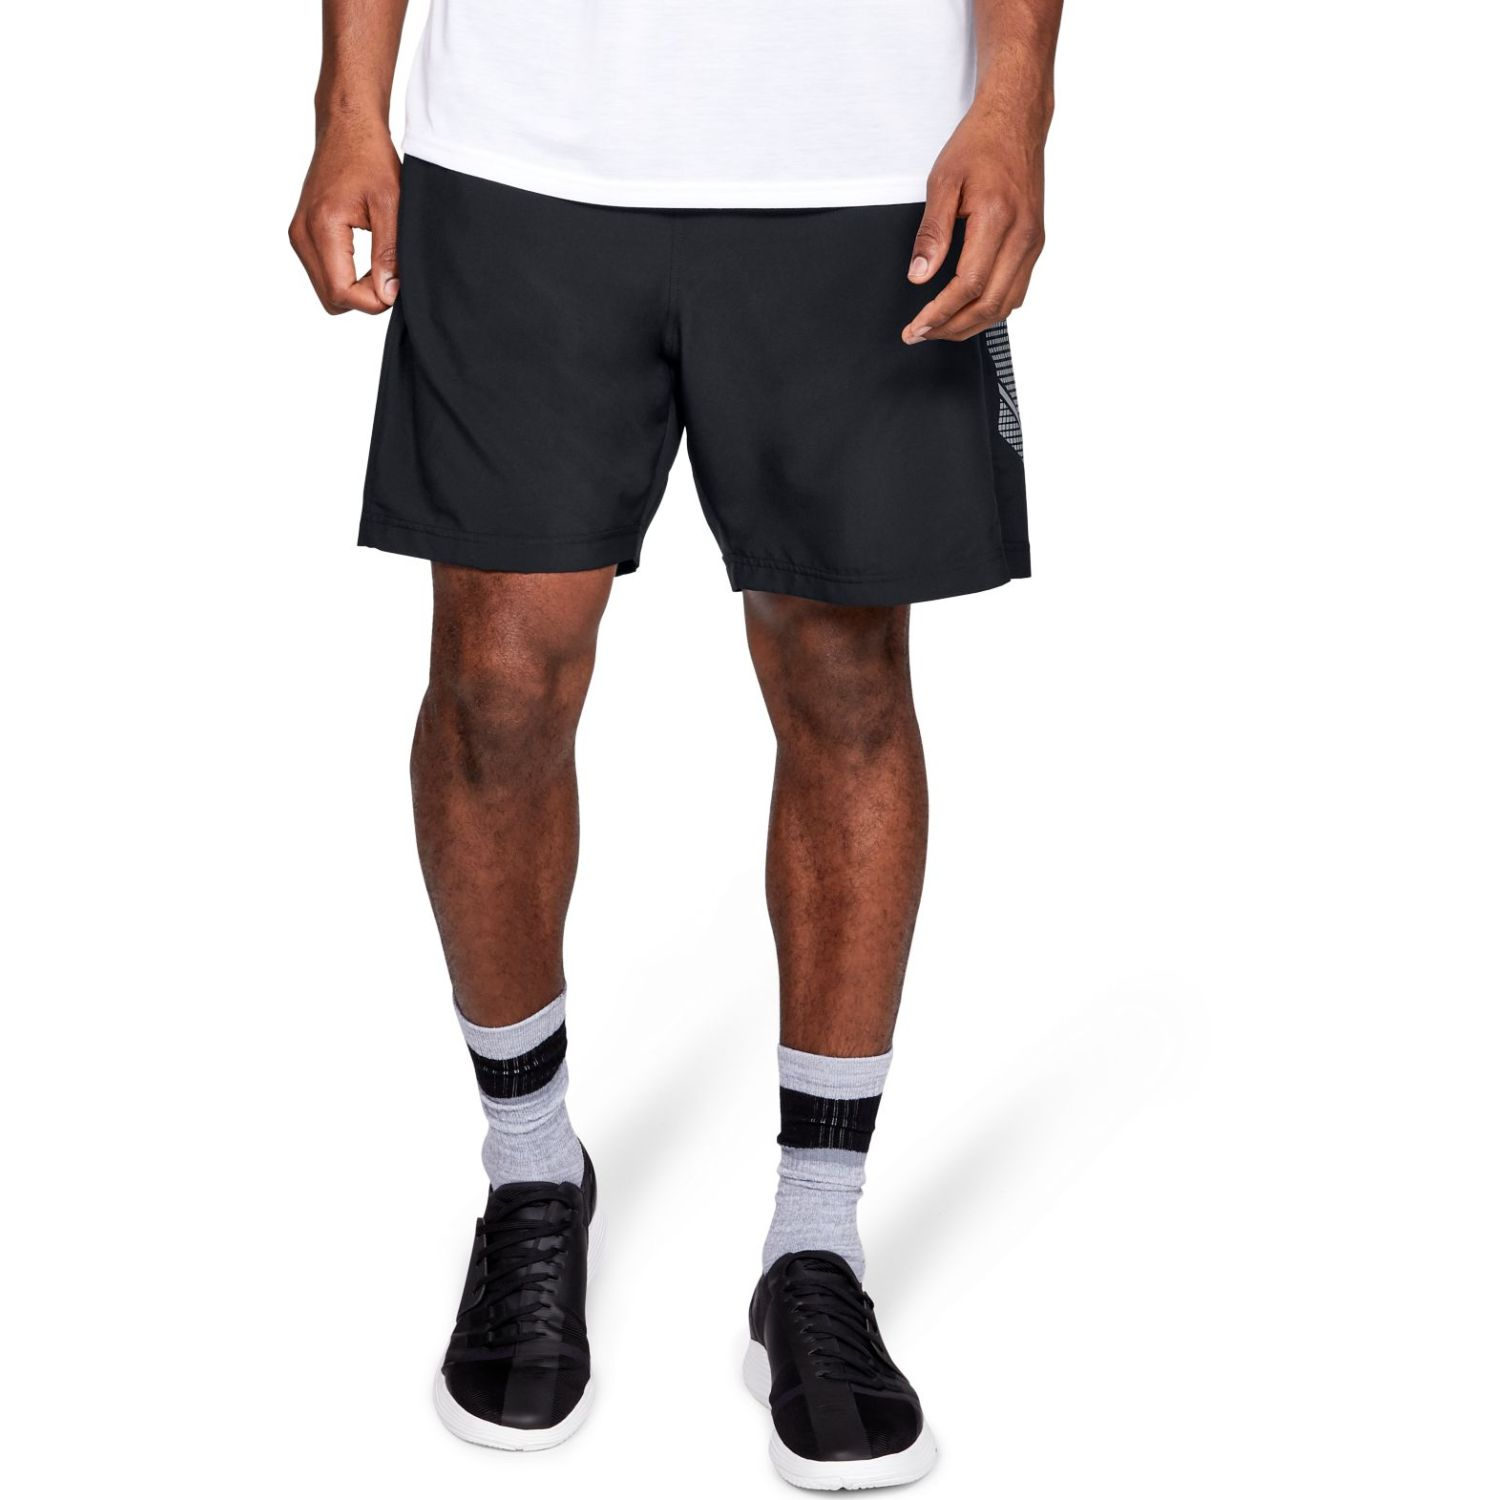 Under Armour Woven Graphic Short-Blk Negro Shorts Deportivos